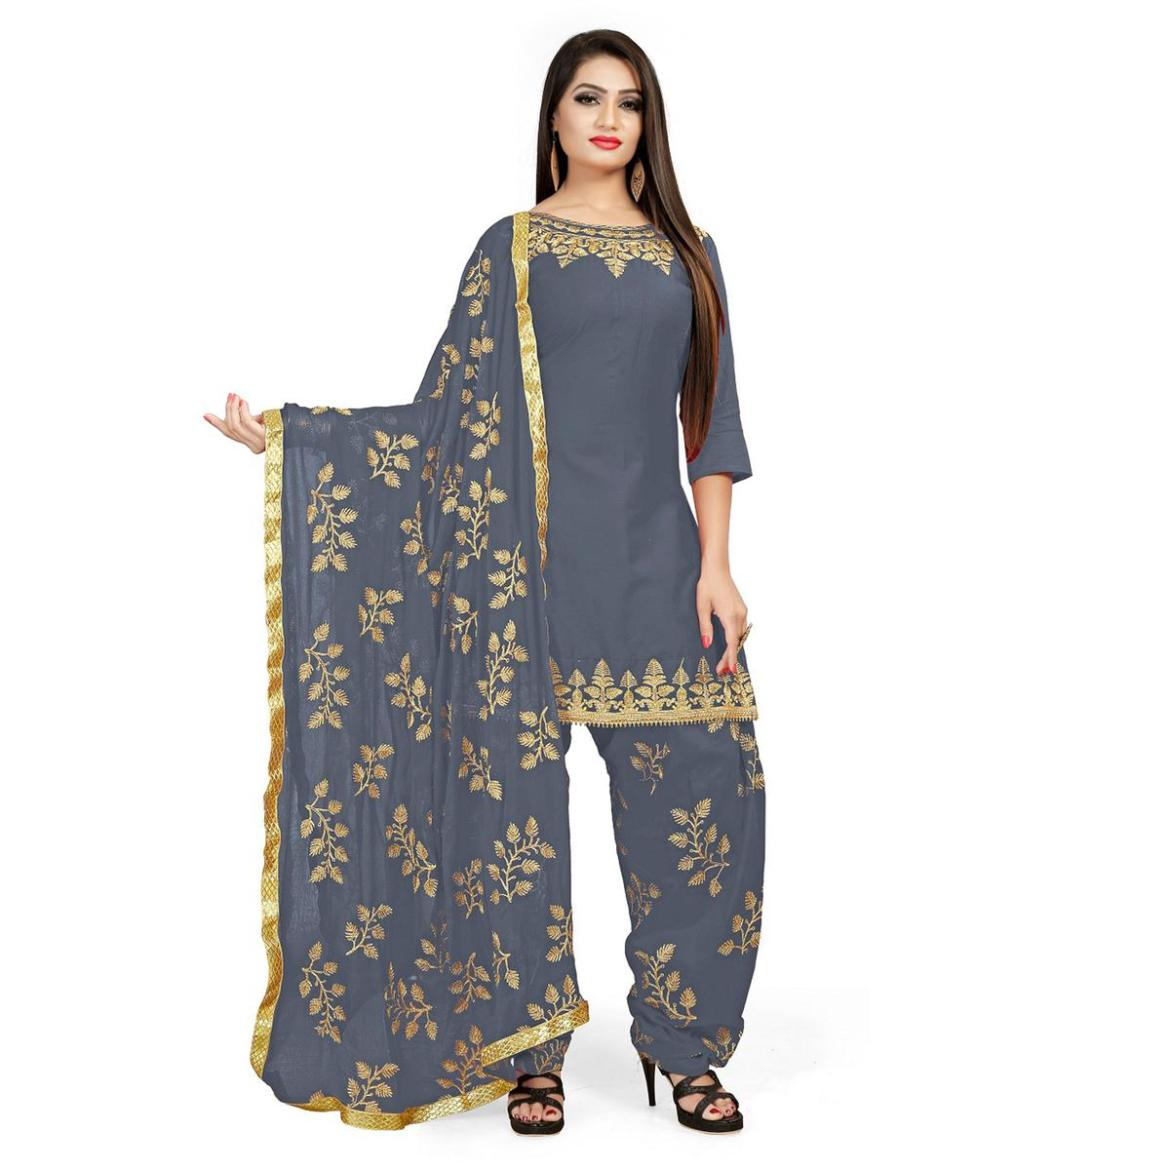 IRIS - Grey Colored Party Wear Embroidered Cotton Patiyala Style Dress Material